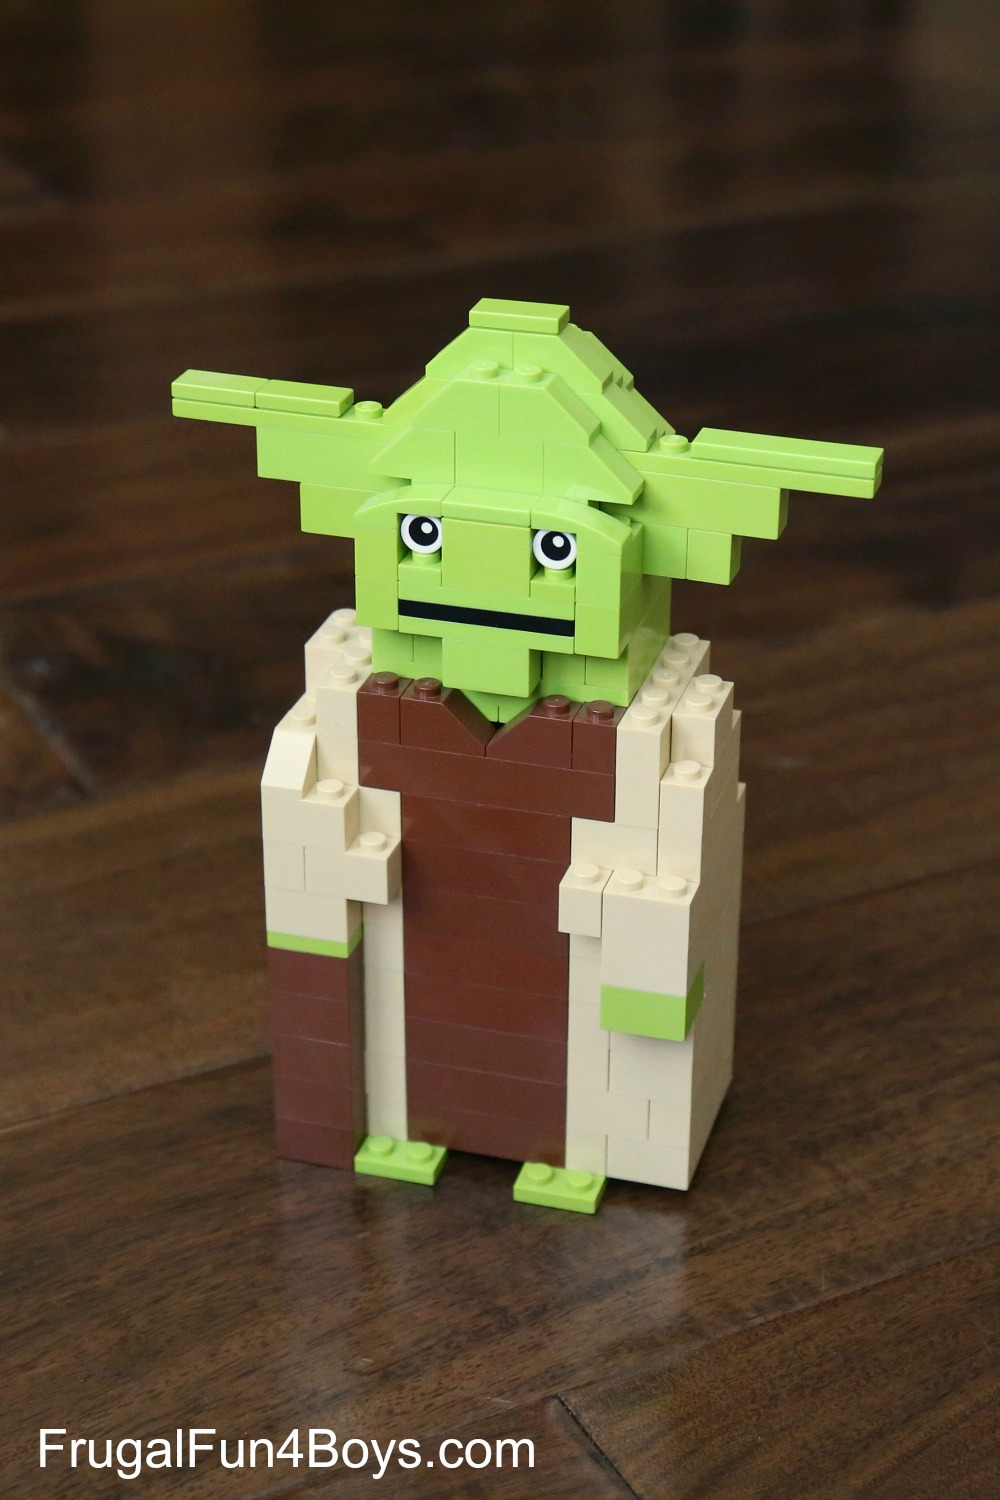 75+ LEGO Ideas for Kids